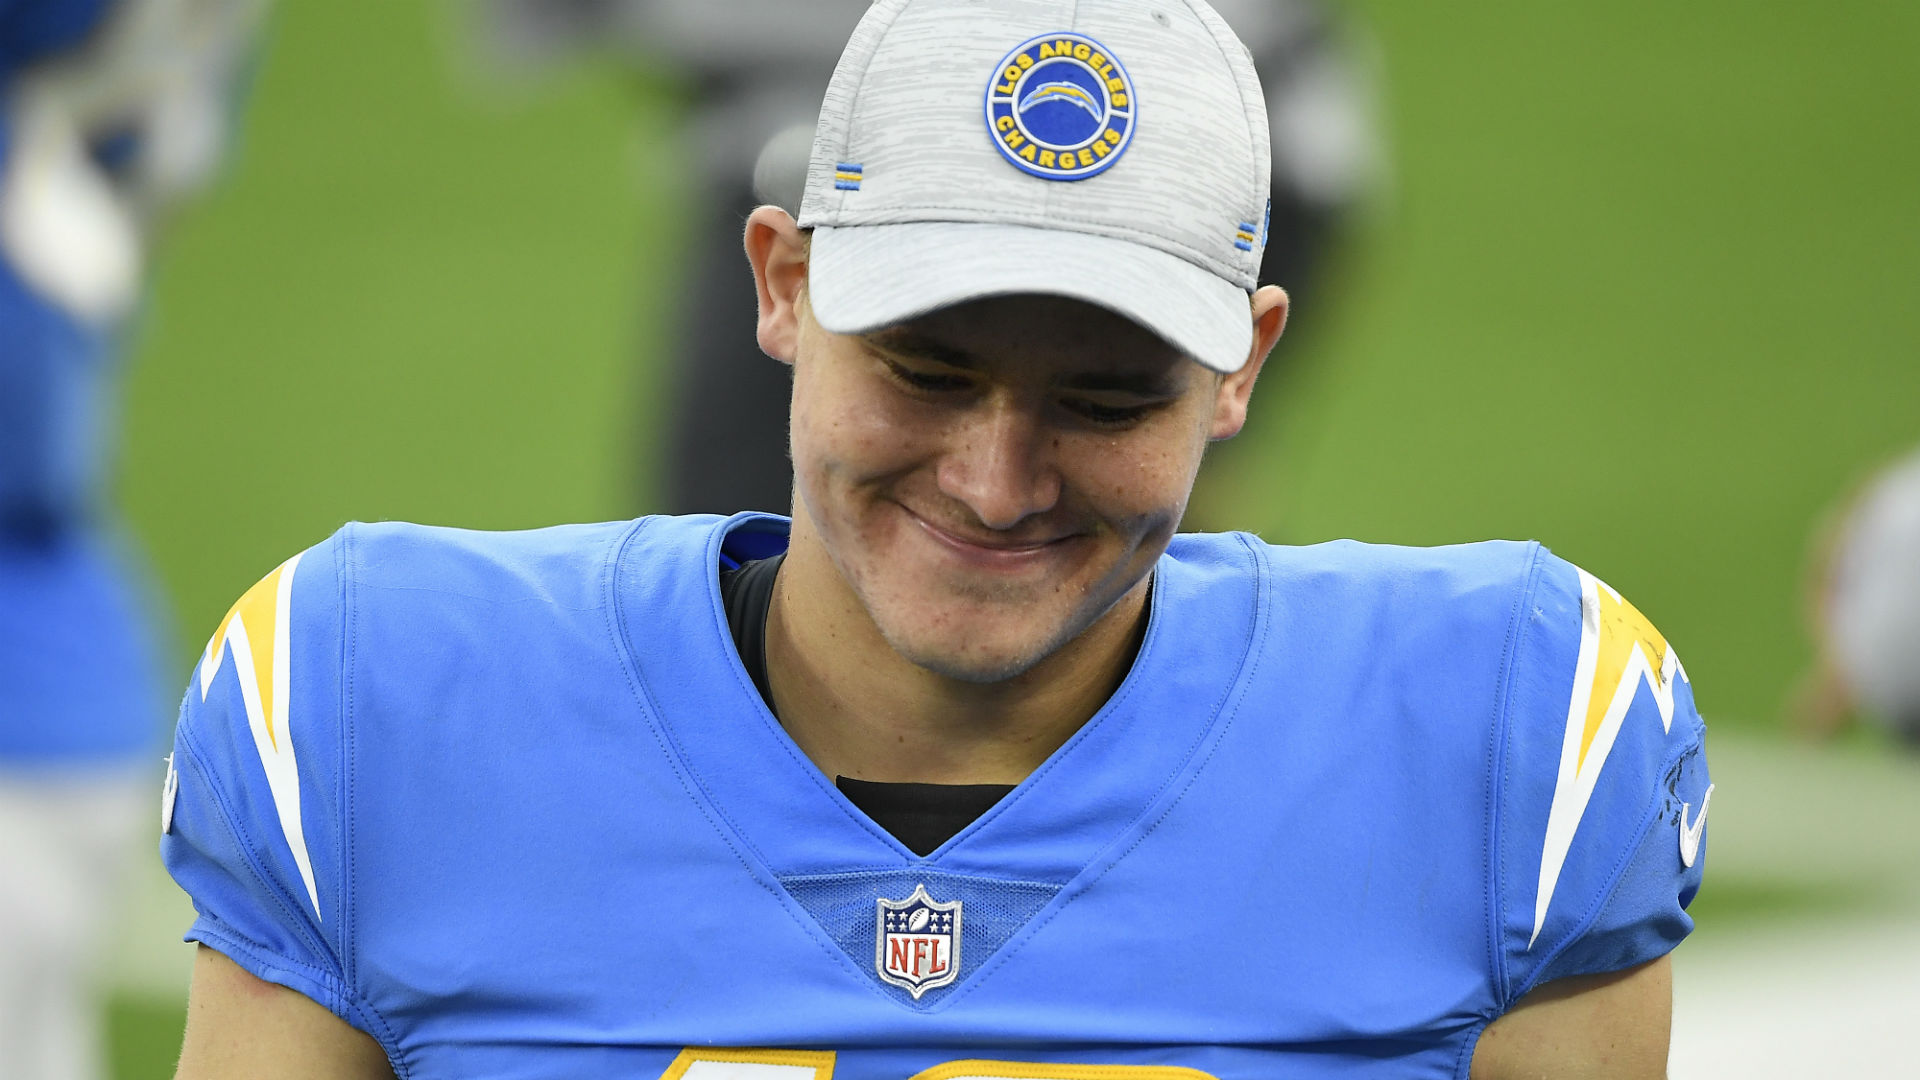 Here are the best jokes from the Chargers' schedule release video, which was a delight aside